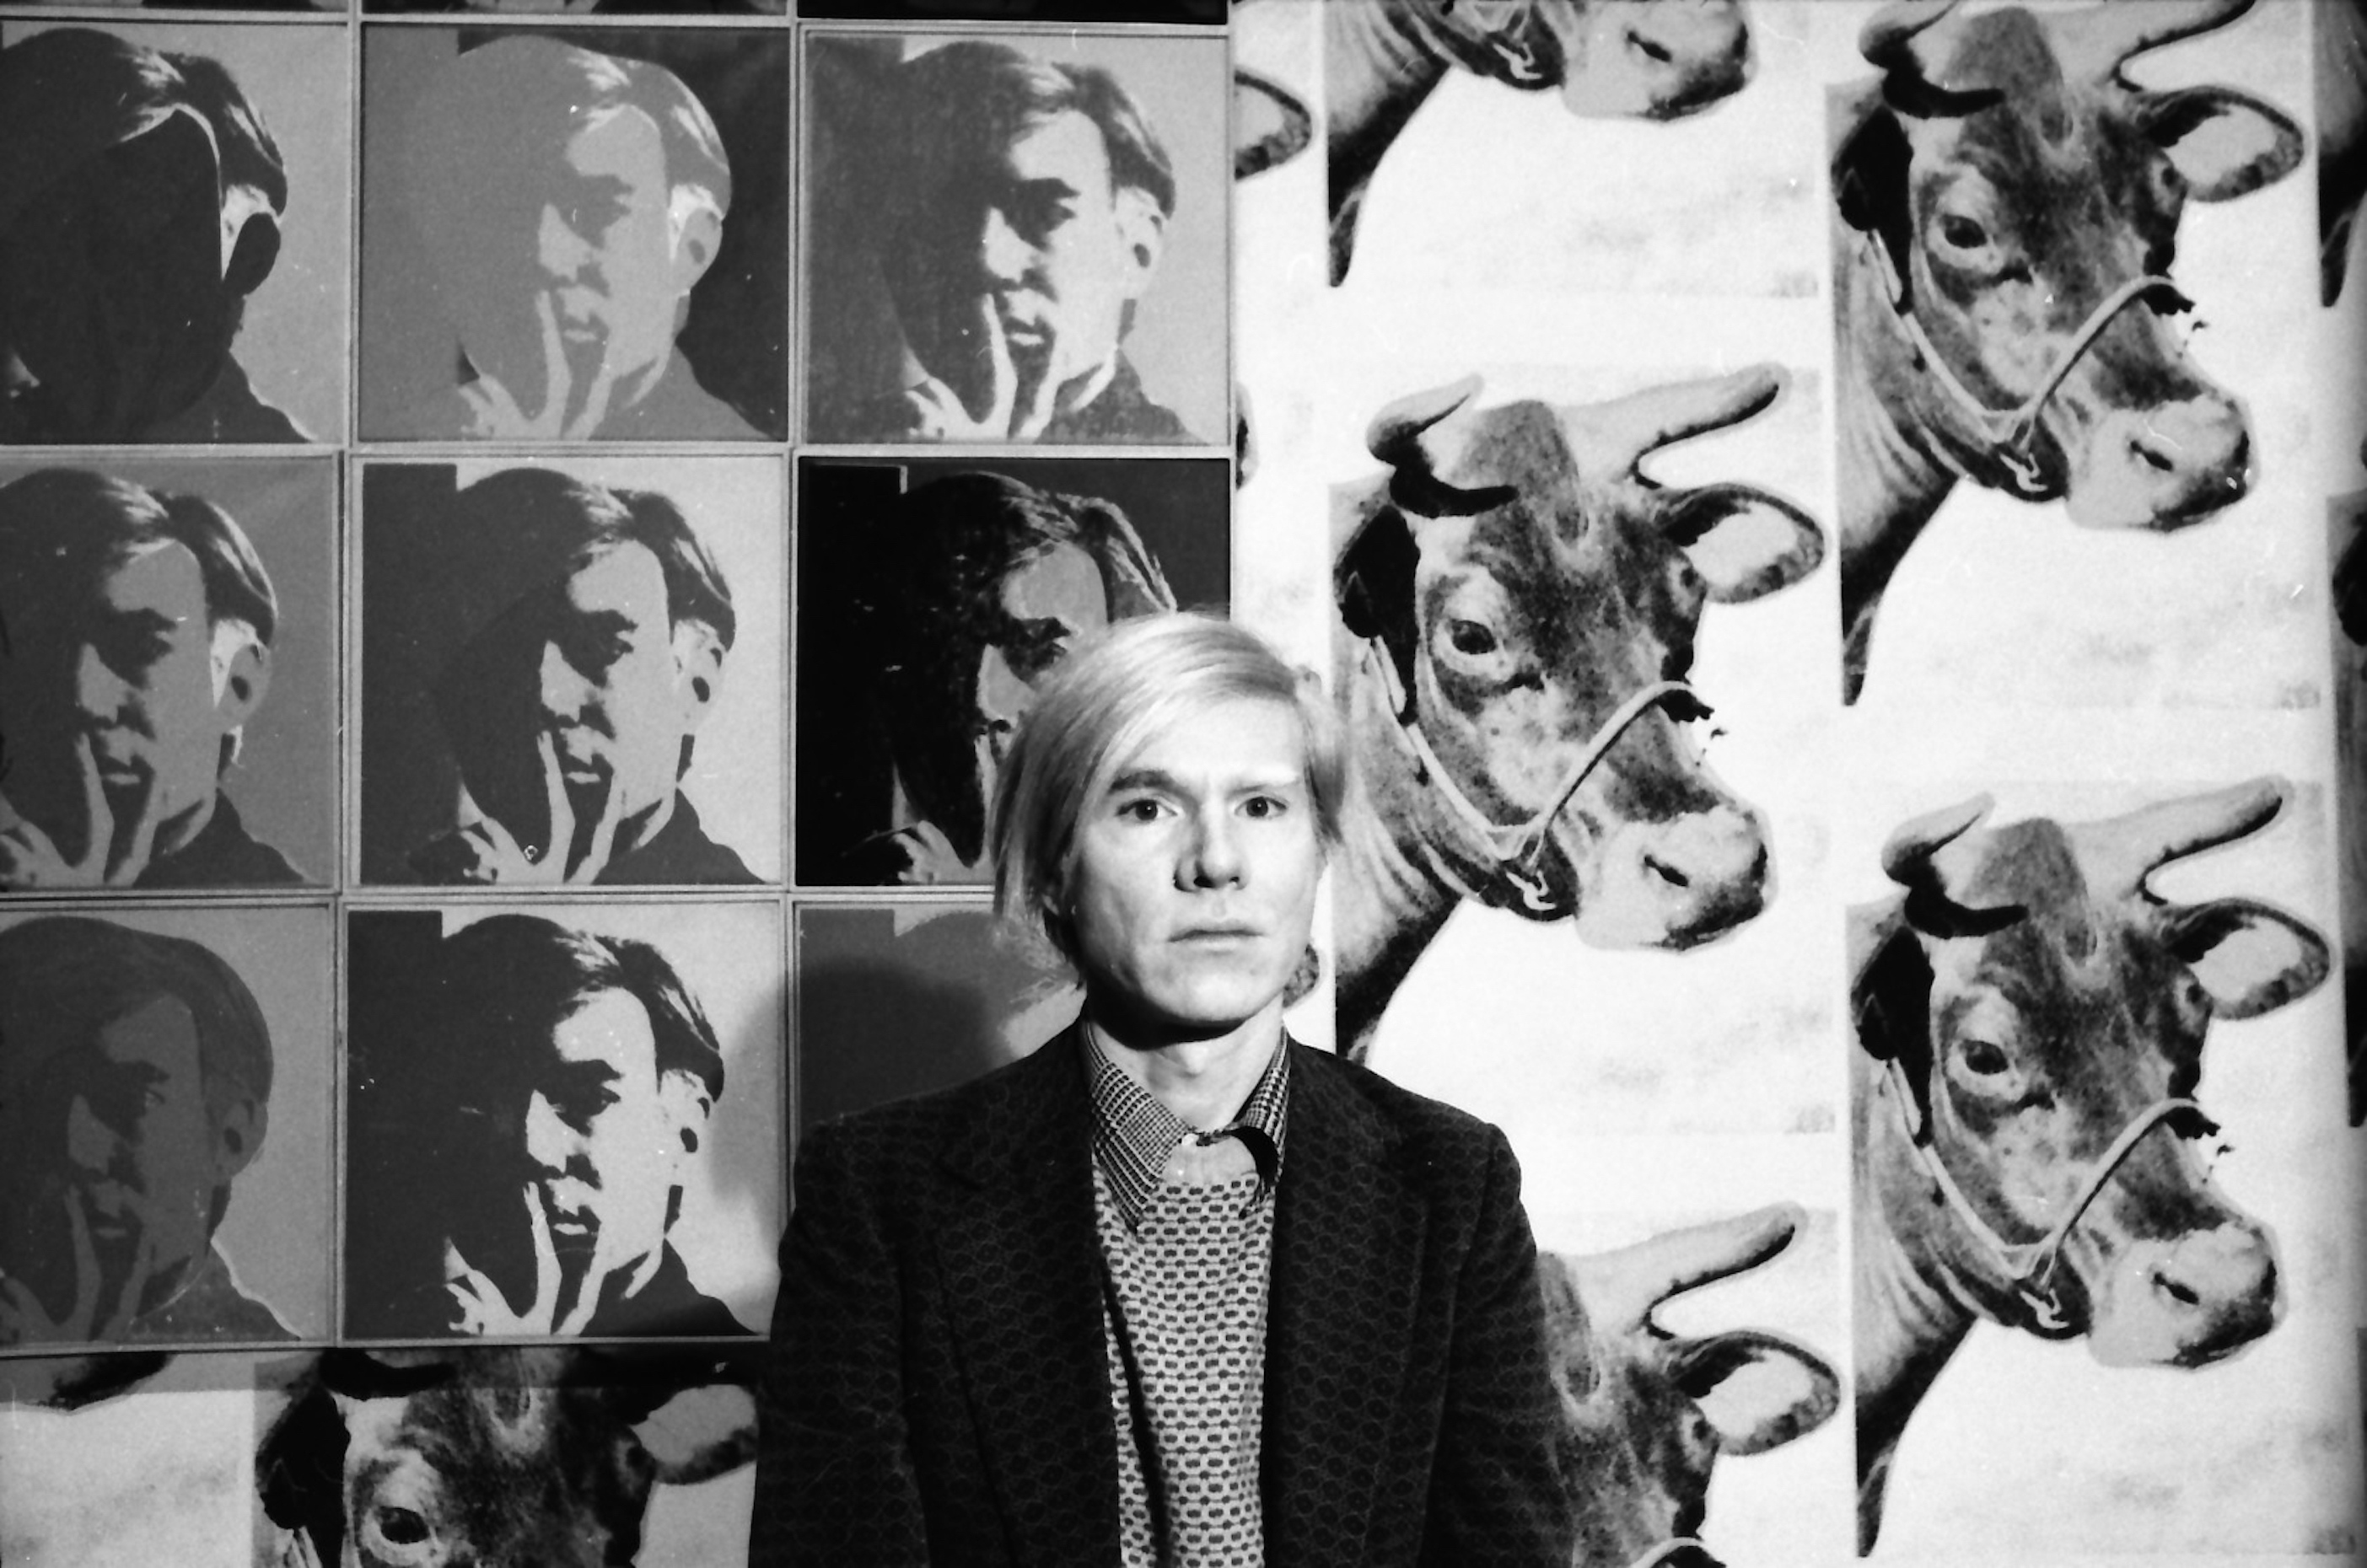 Andy Warhol - Self Portrait - Caw